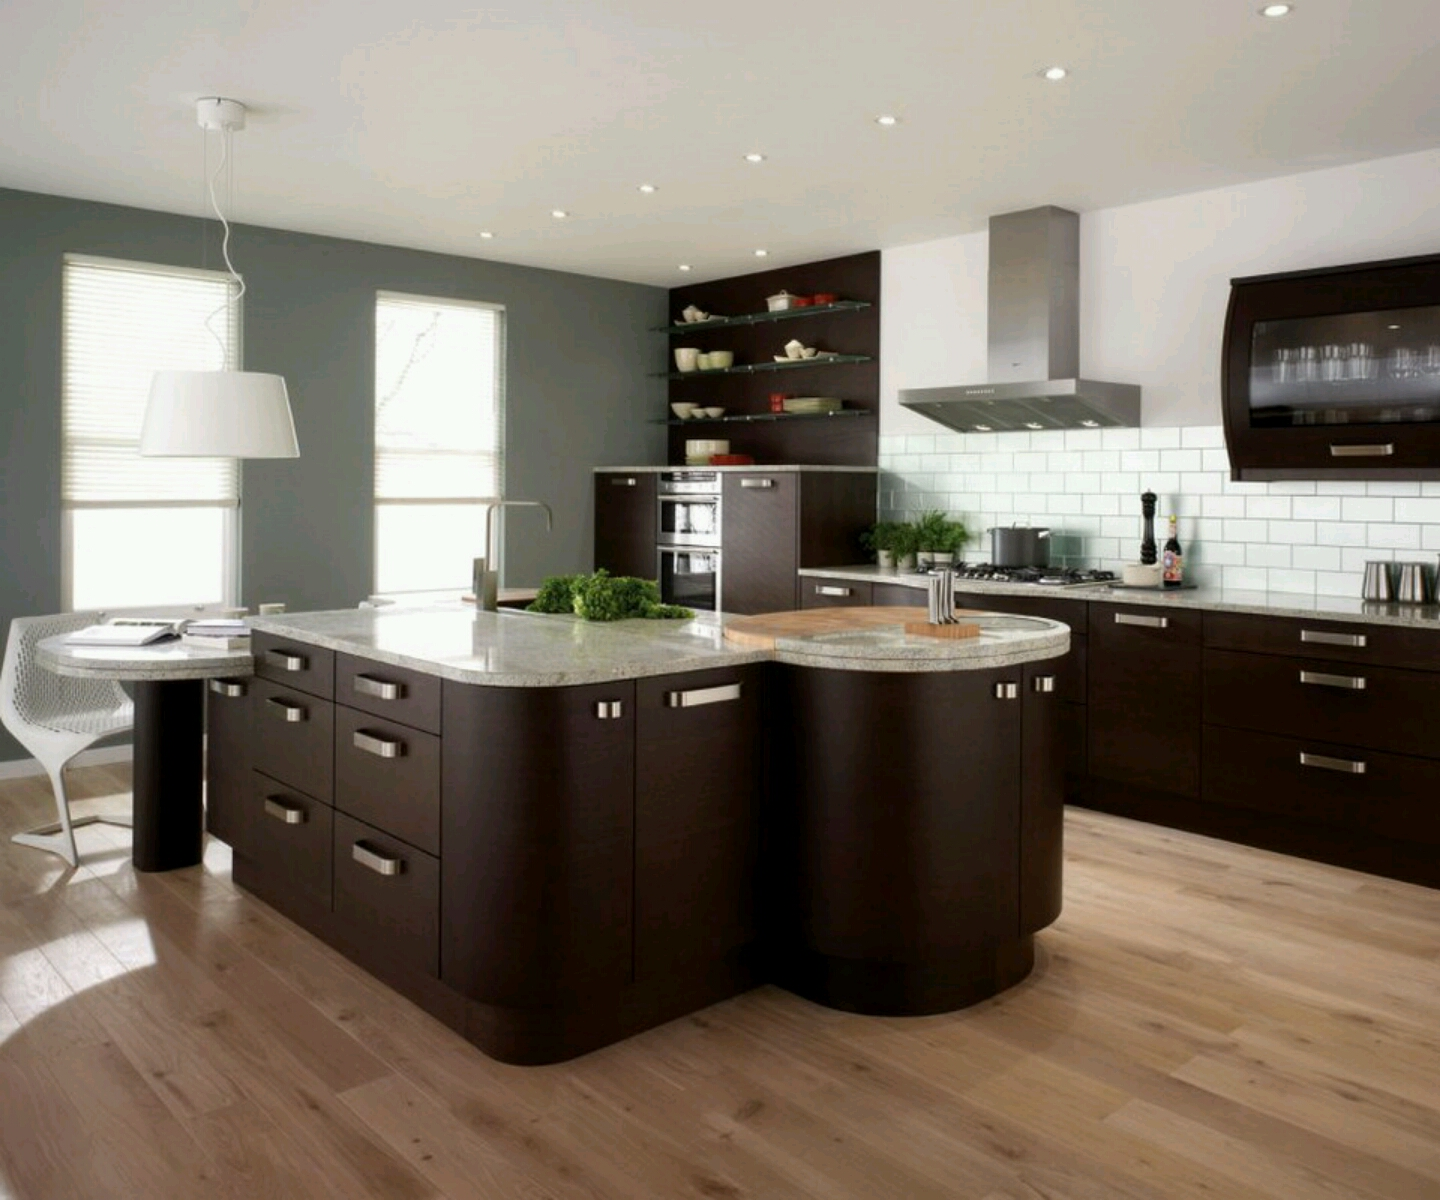 Modern Contemporary Kitchen Design: External Home Design, Interior